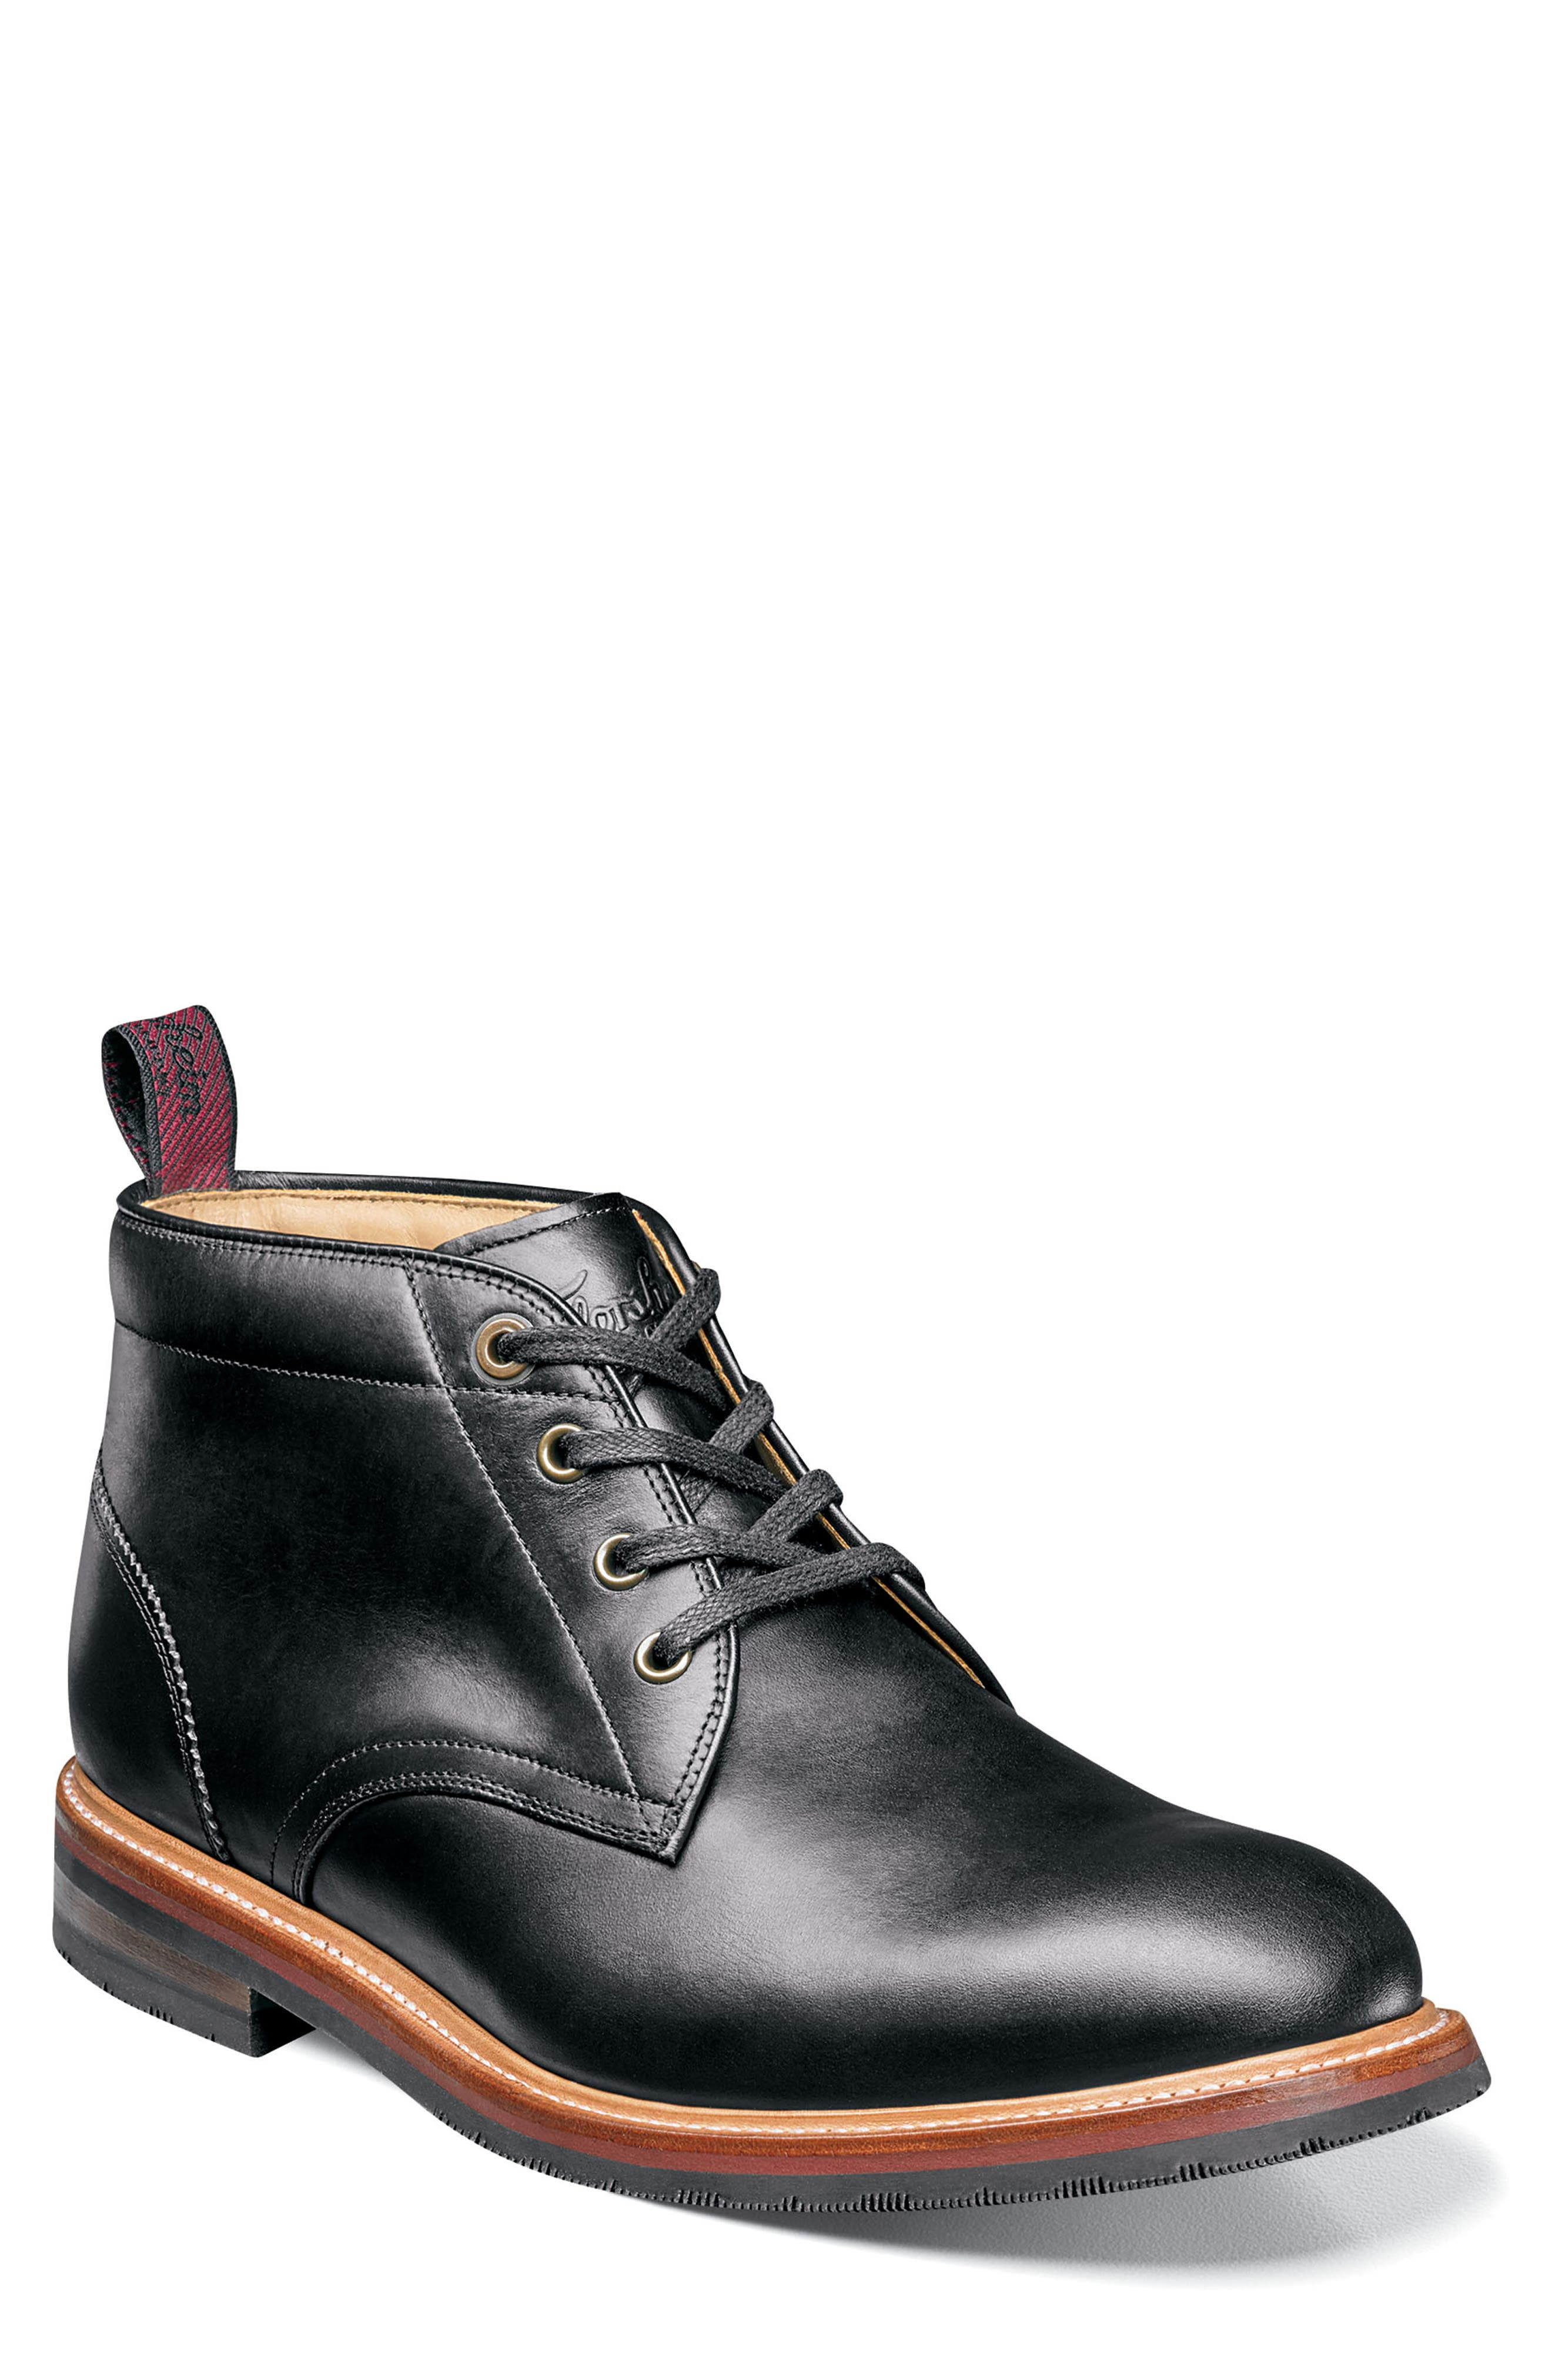 FLORSHEIM Foundry Leather Boot, Main, color, BLACK LEATHER